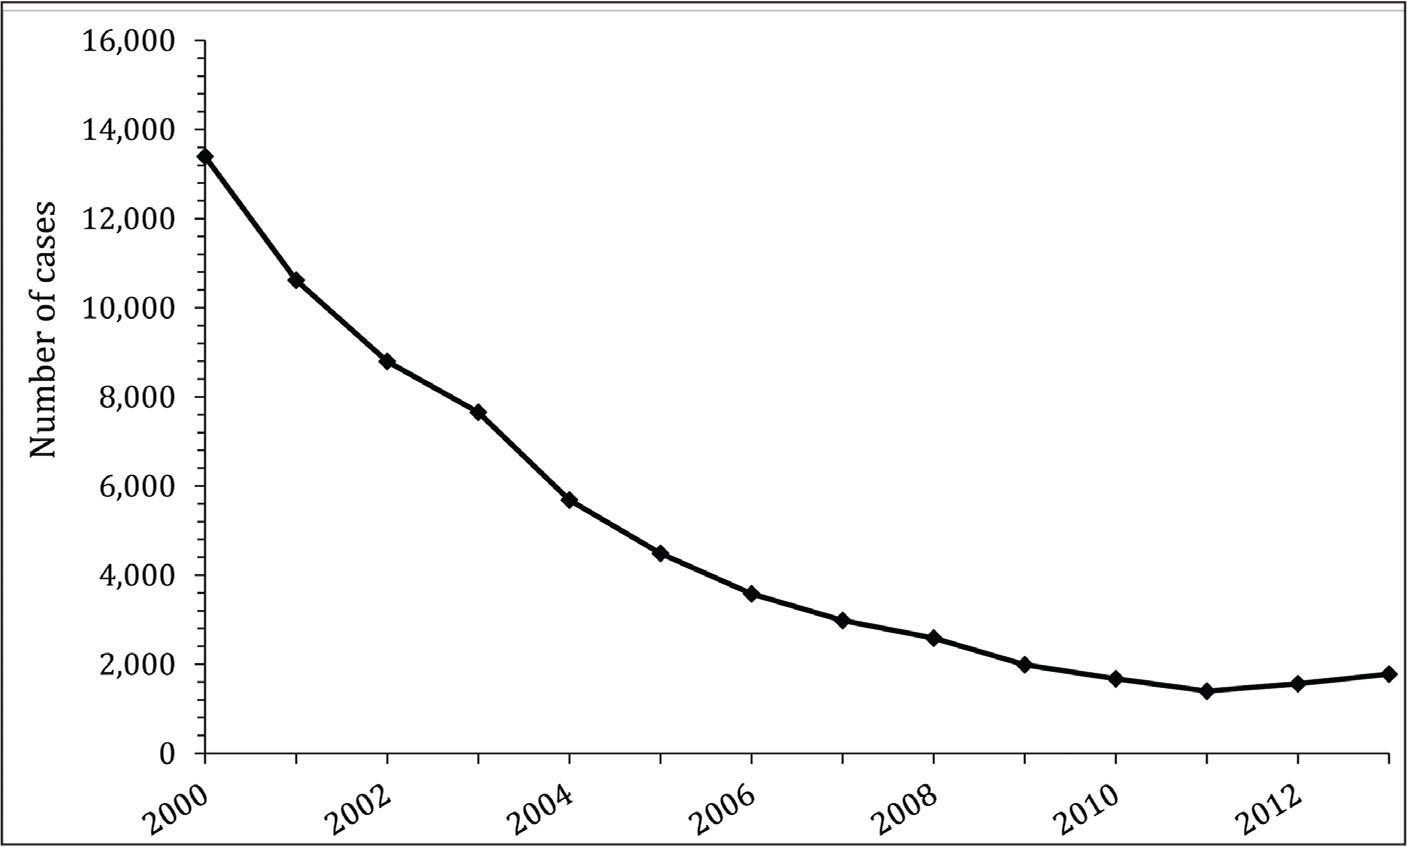 Incidence of hepatitis A virus infection in the United States. From the Centers for Disease Control and Prevention37 (in the public domain; permission not required).